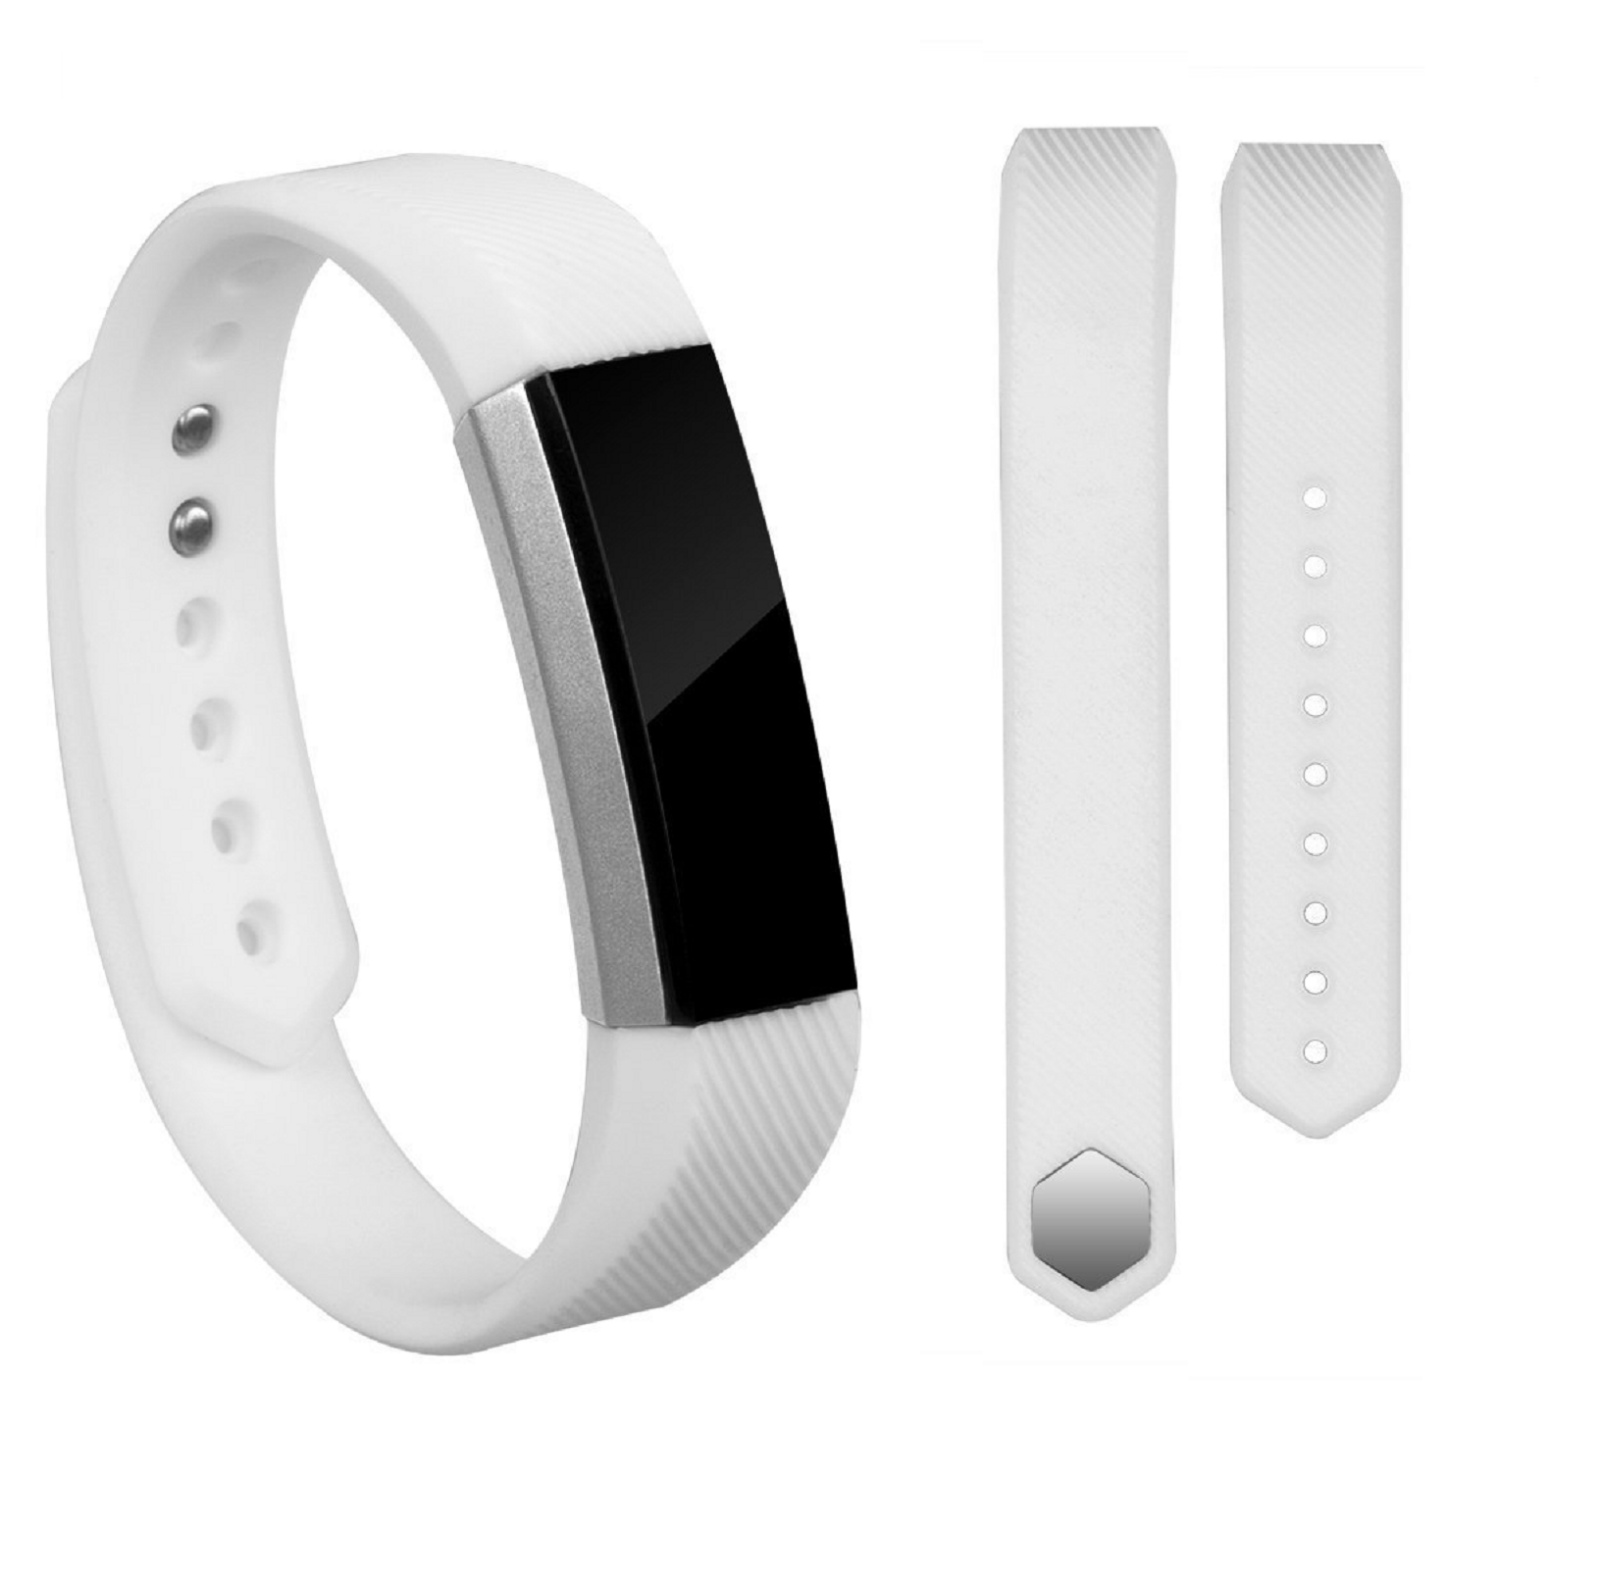 Replacement Silicone Wrist Band Strap For Fitbit Alta/ Fitbit Alta HR White